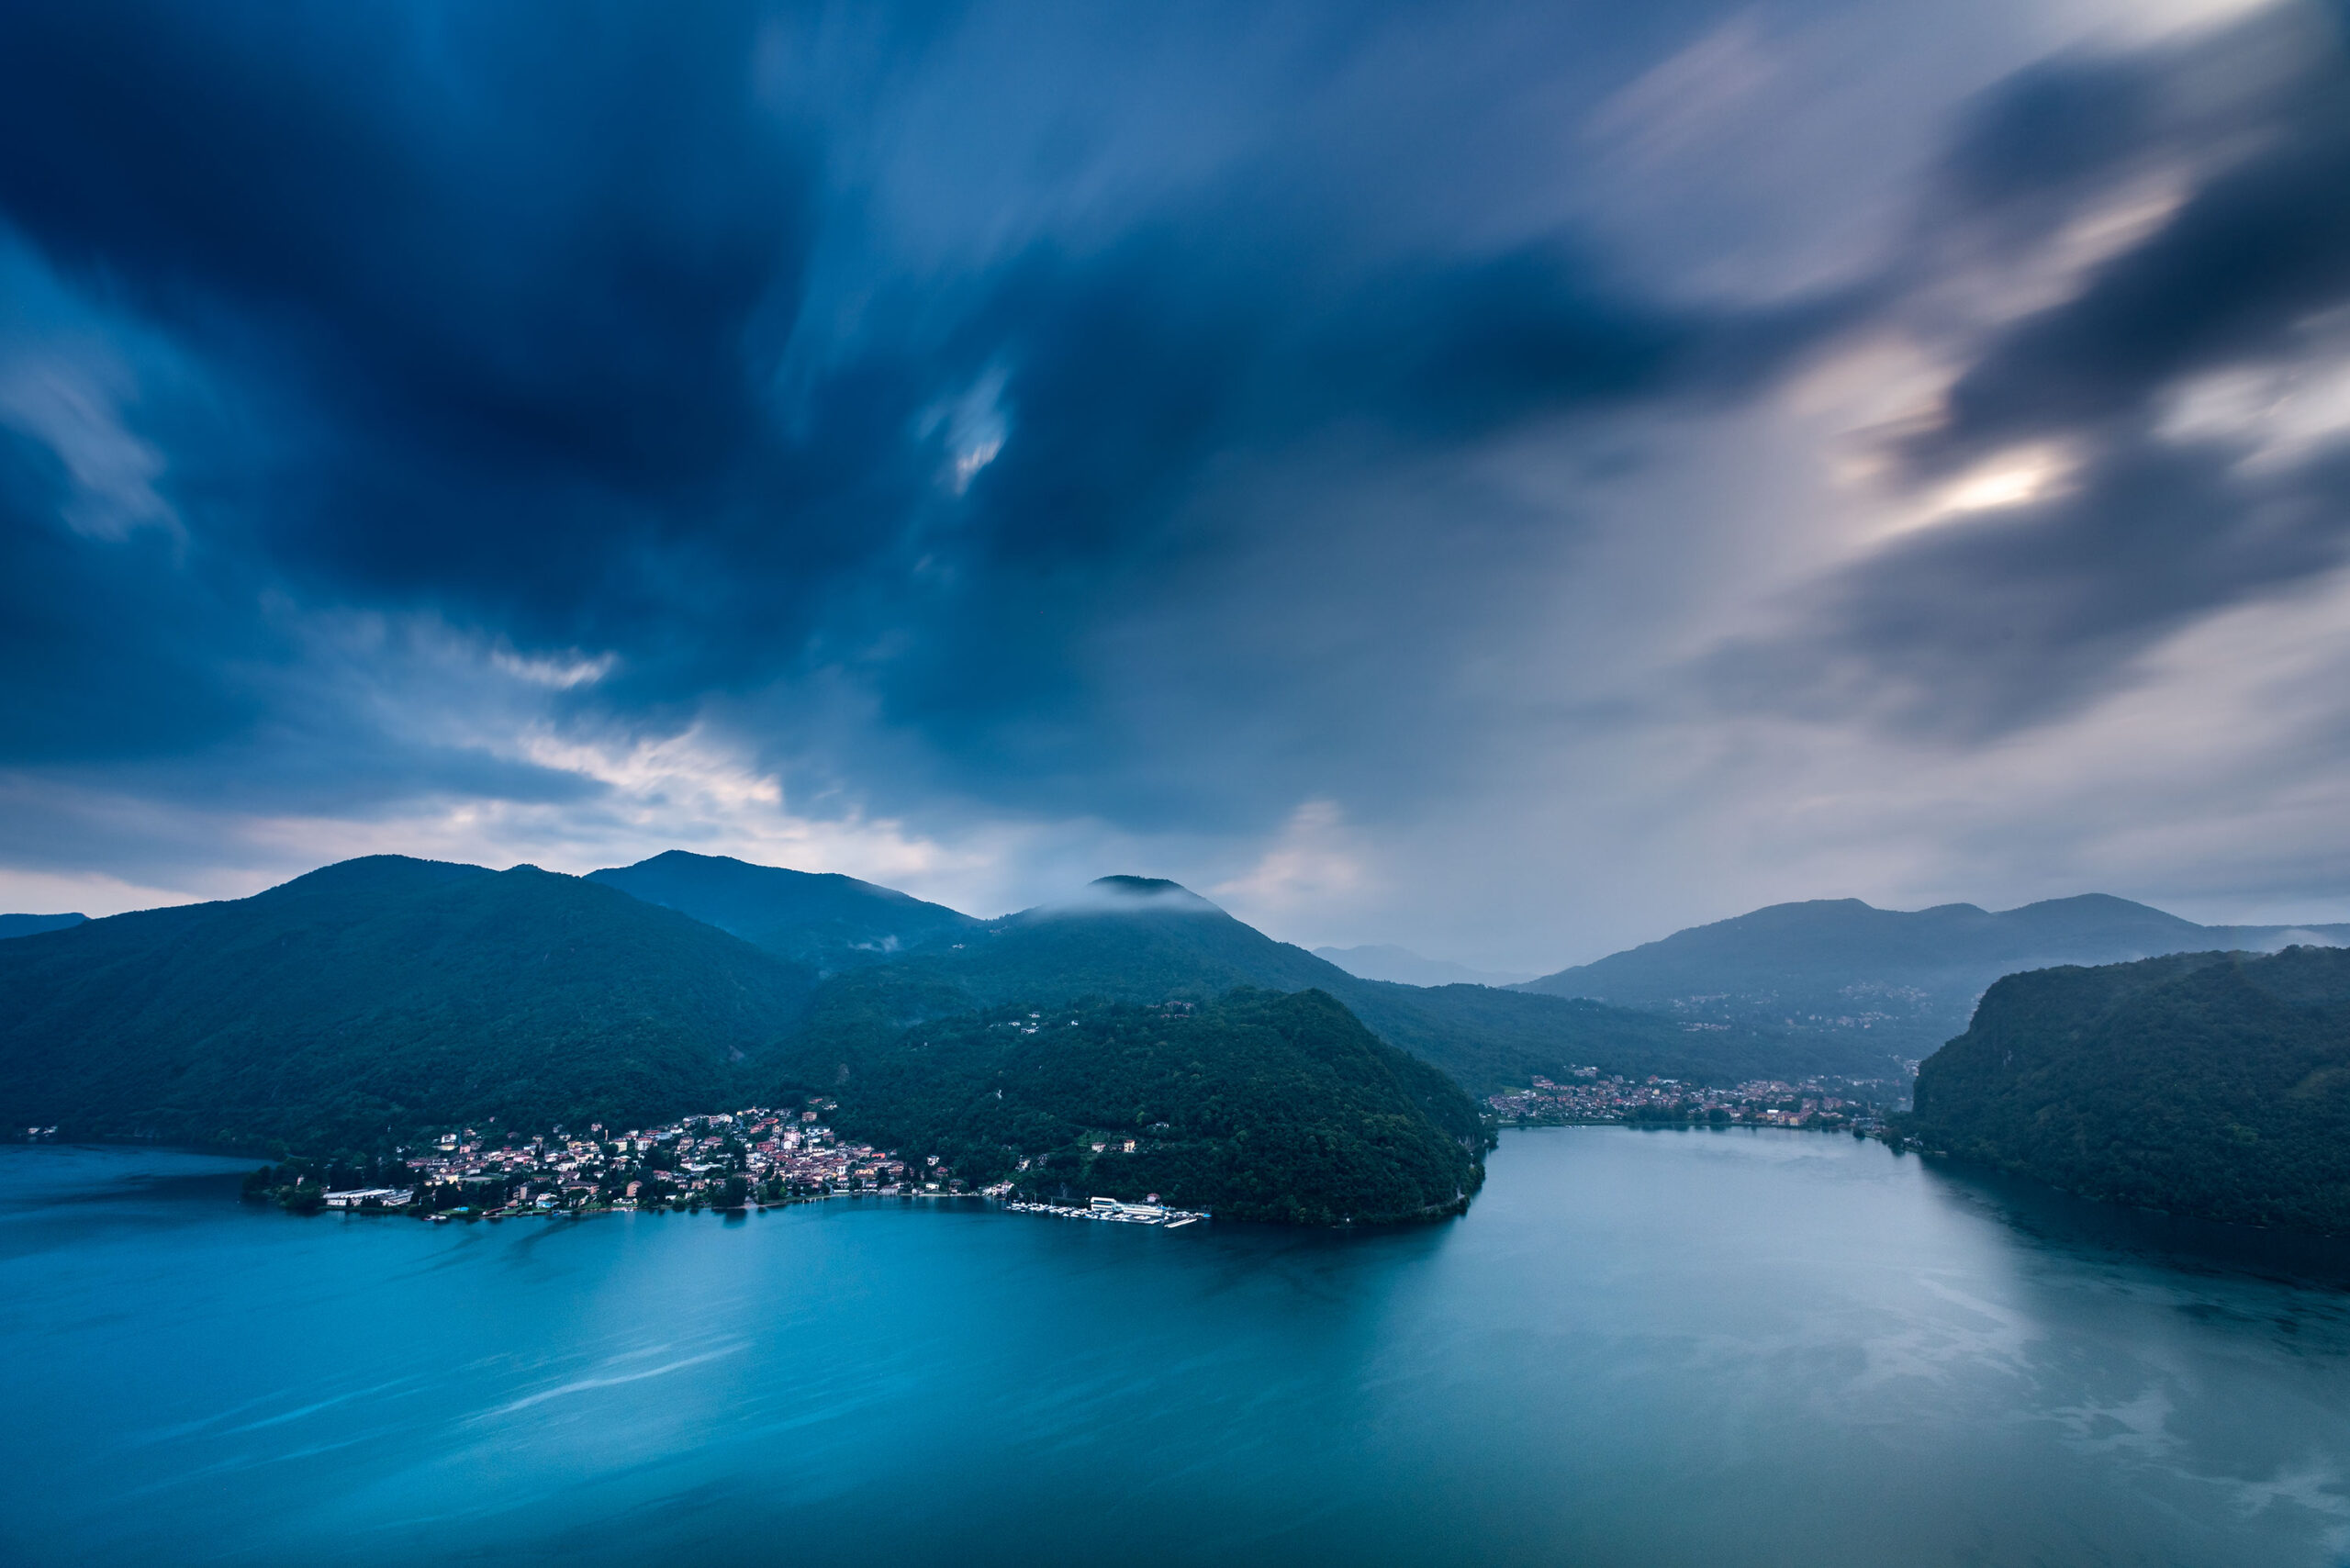 Blue hour photography of Lake Lugano from the Collina d'Oro located near Lugano in Switzerland. Image by Jennifer Esseiva.